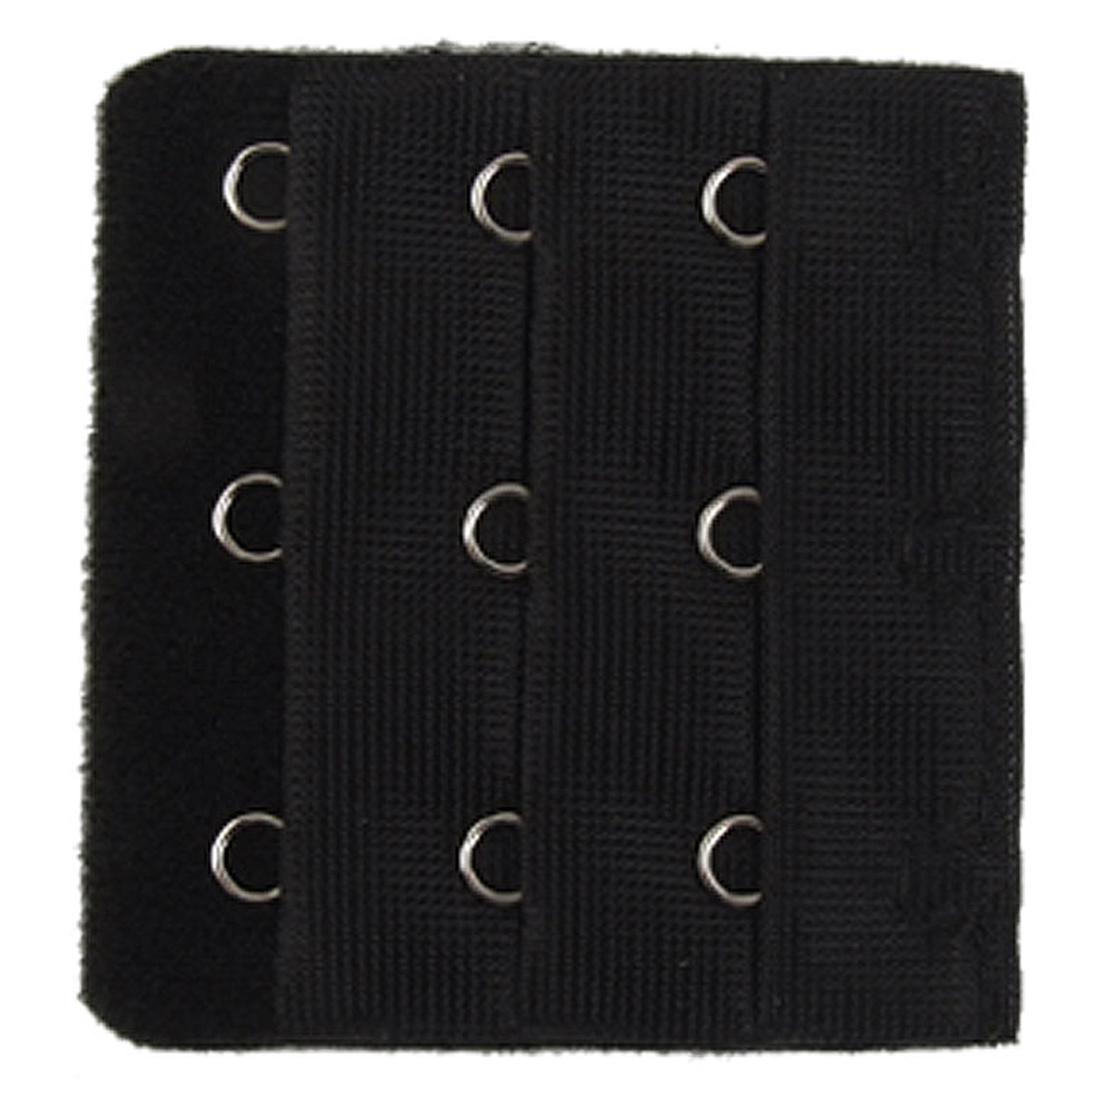 5 Pcs Black 3-Row Hooks Hook and Eye Tape Bra Strap Extenders